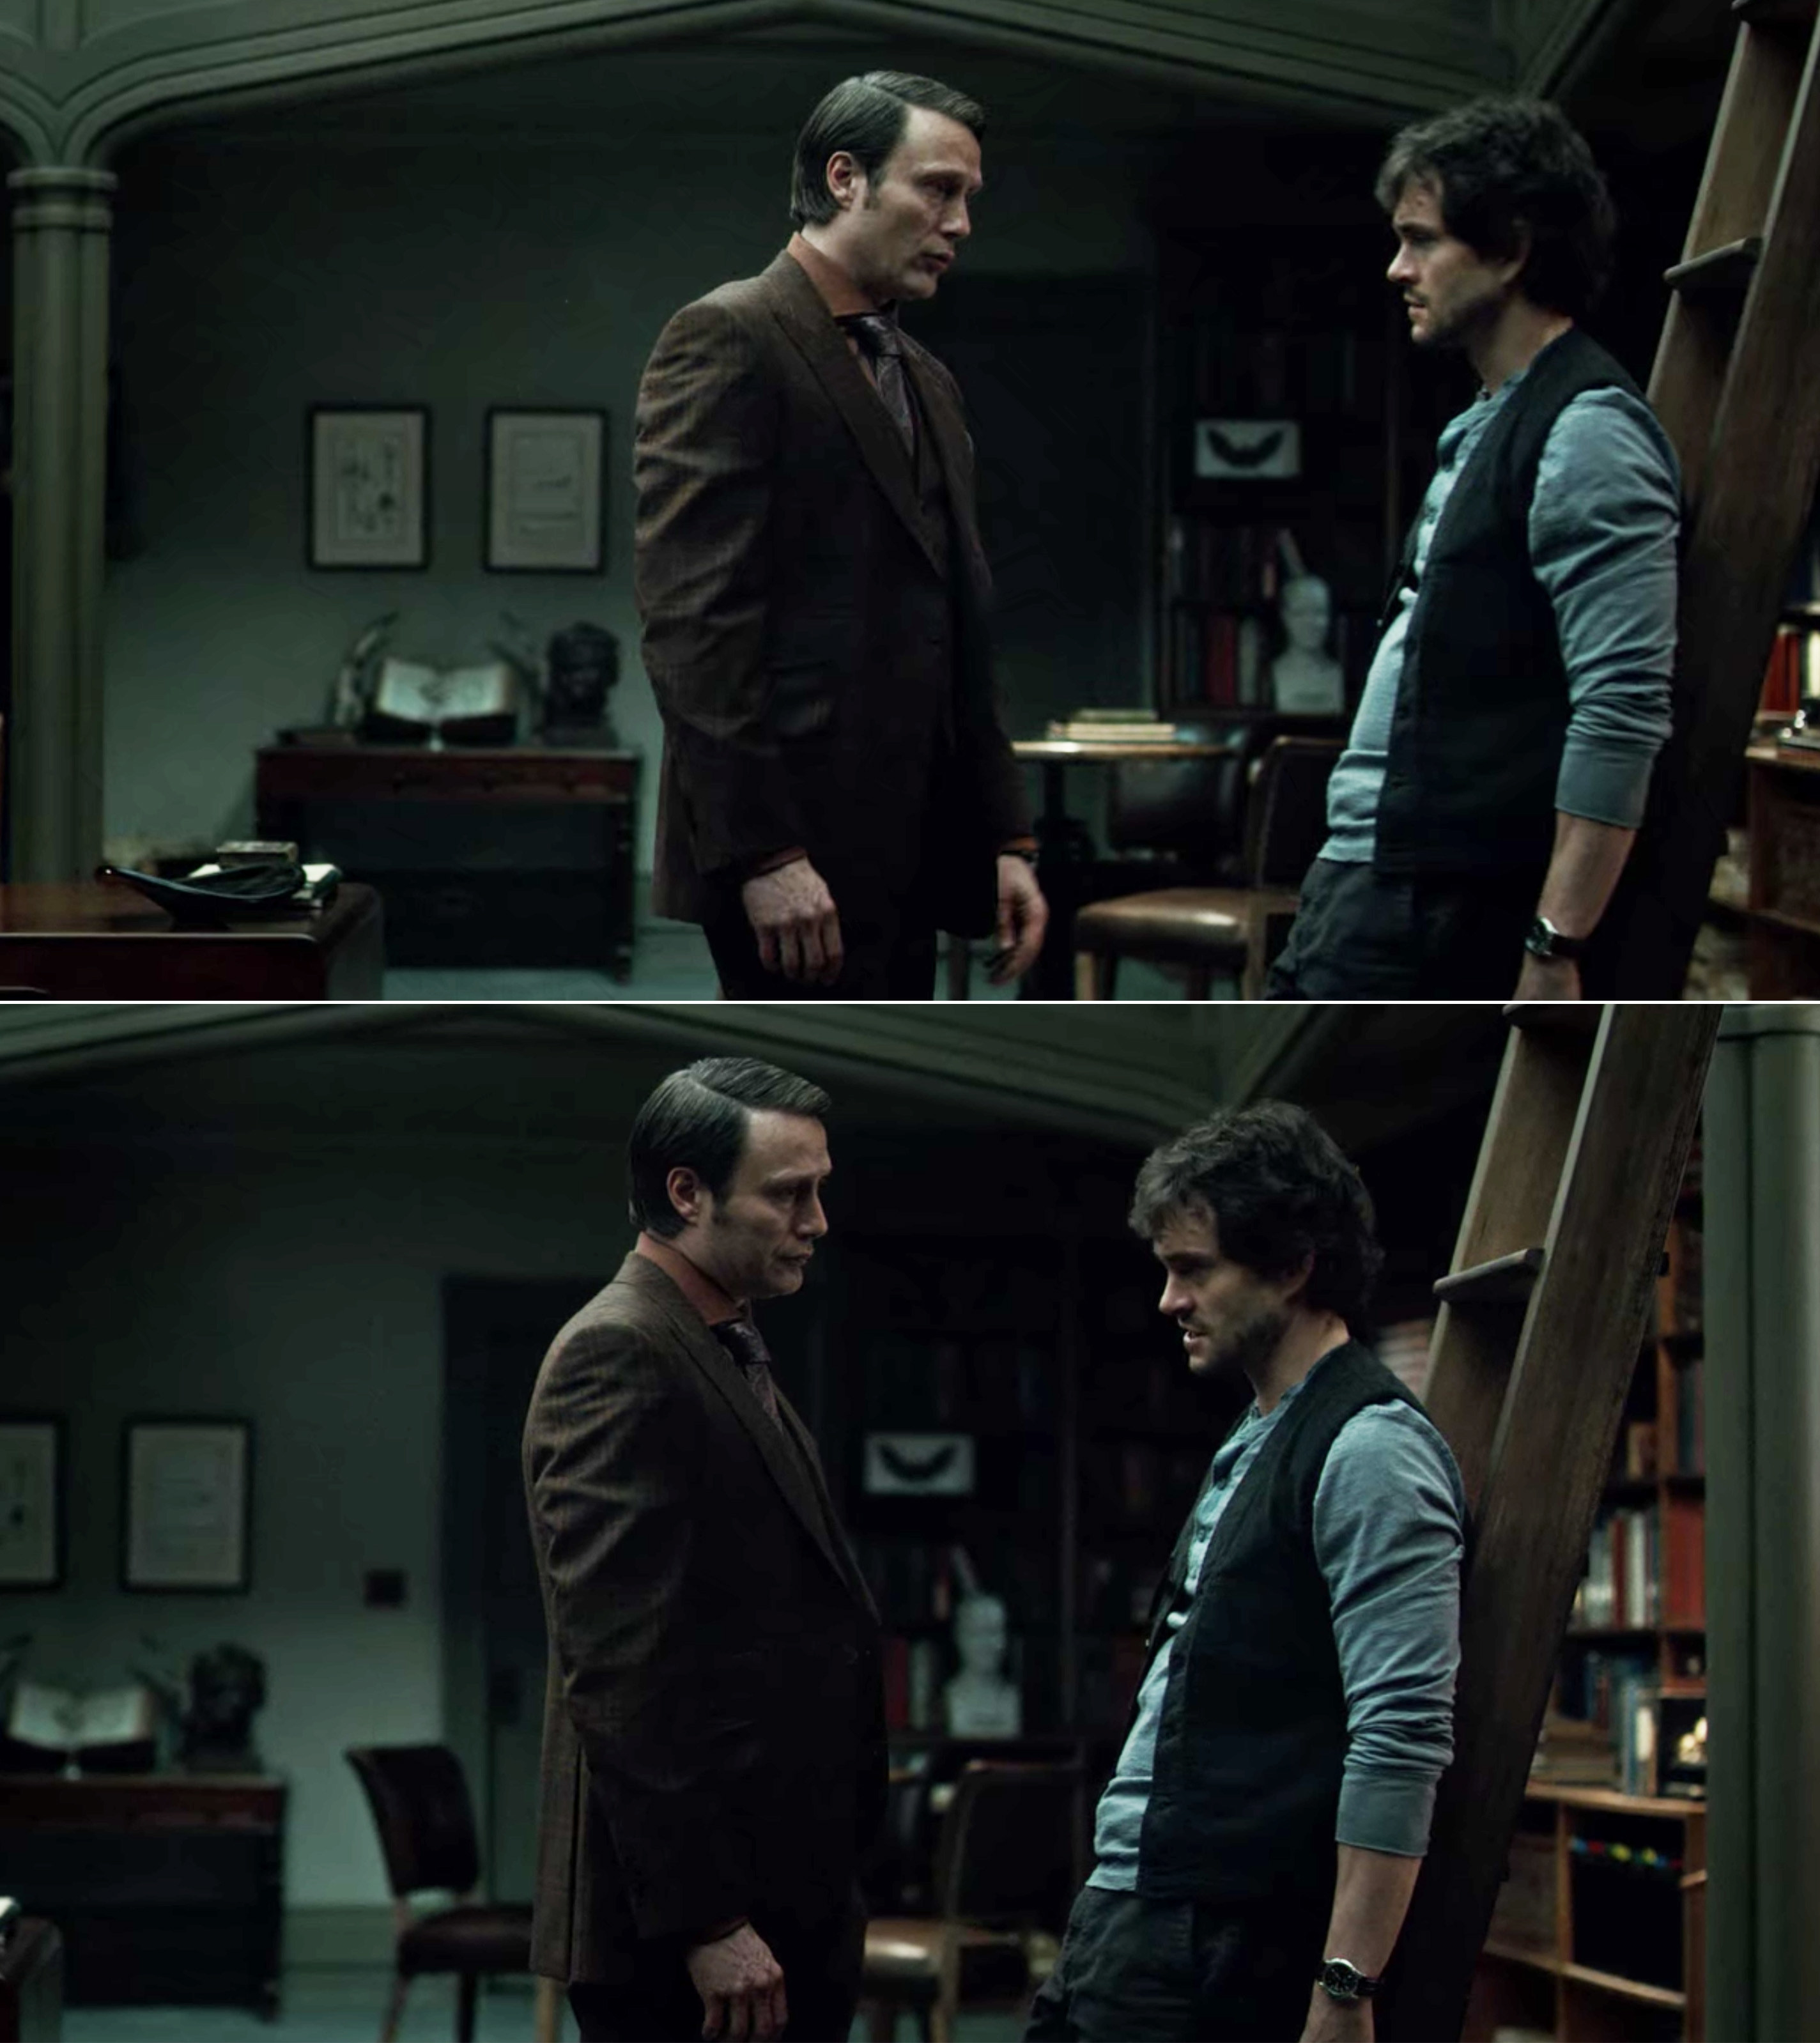 Will and Hannibal looking at each other while Will leans against a ladder